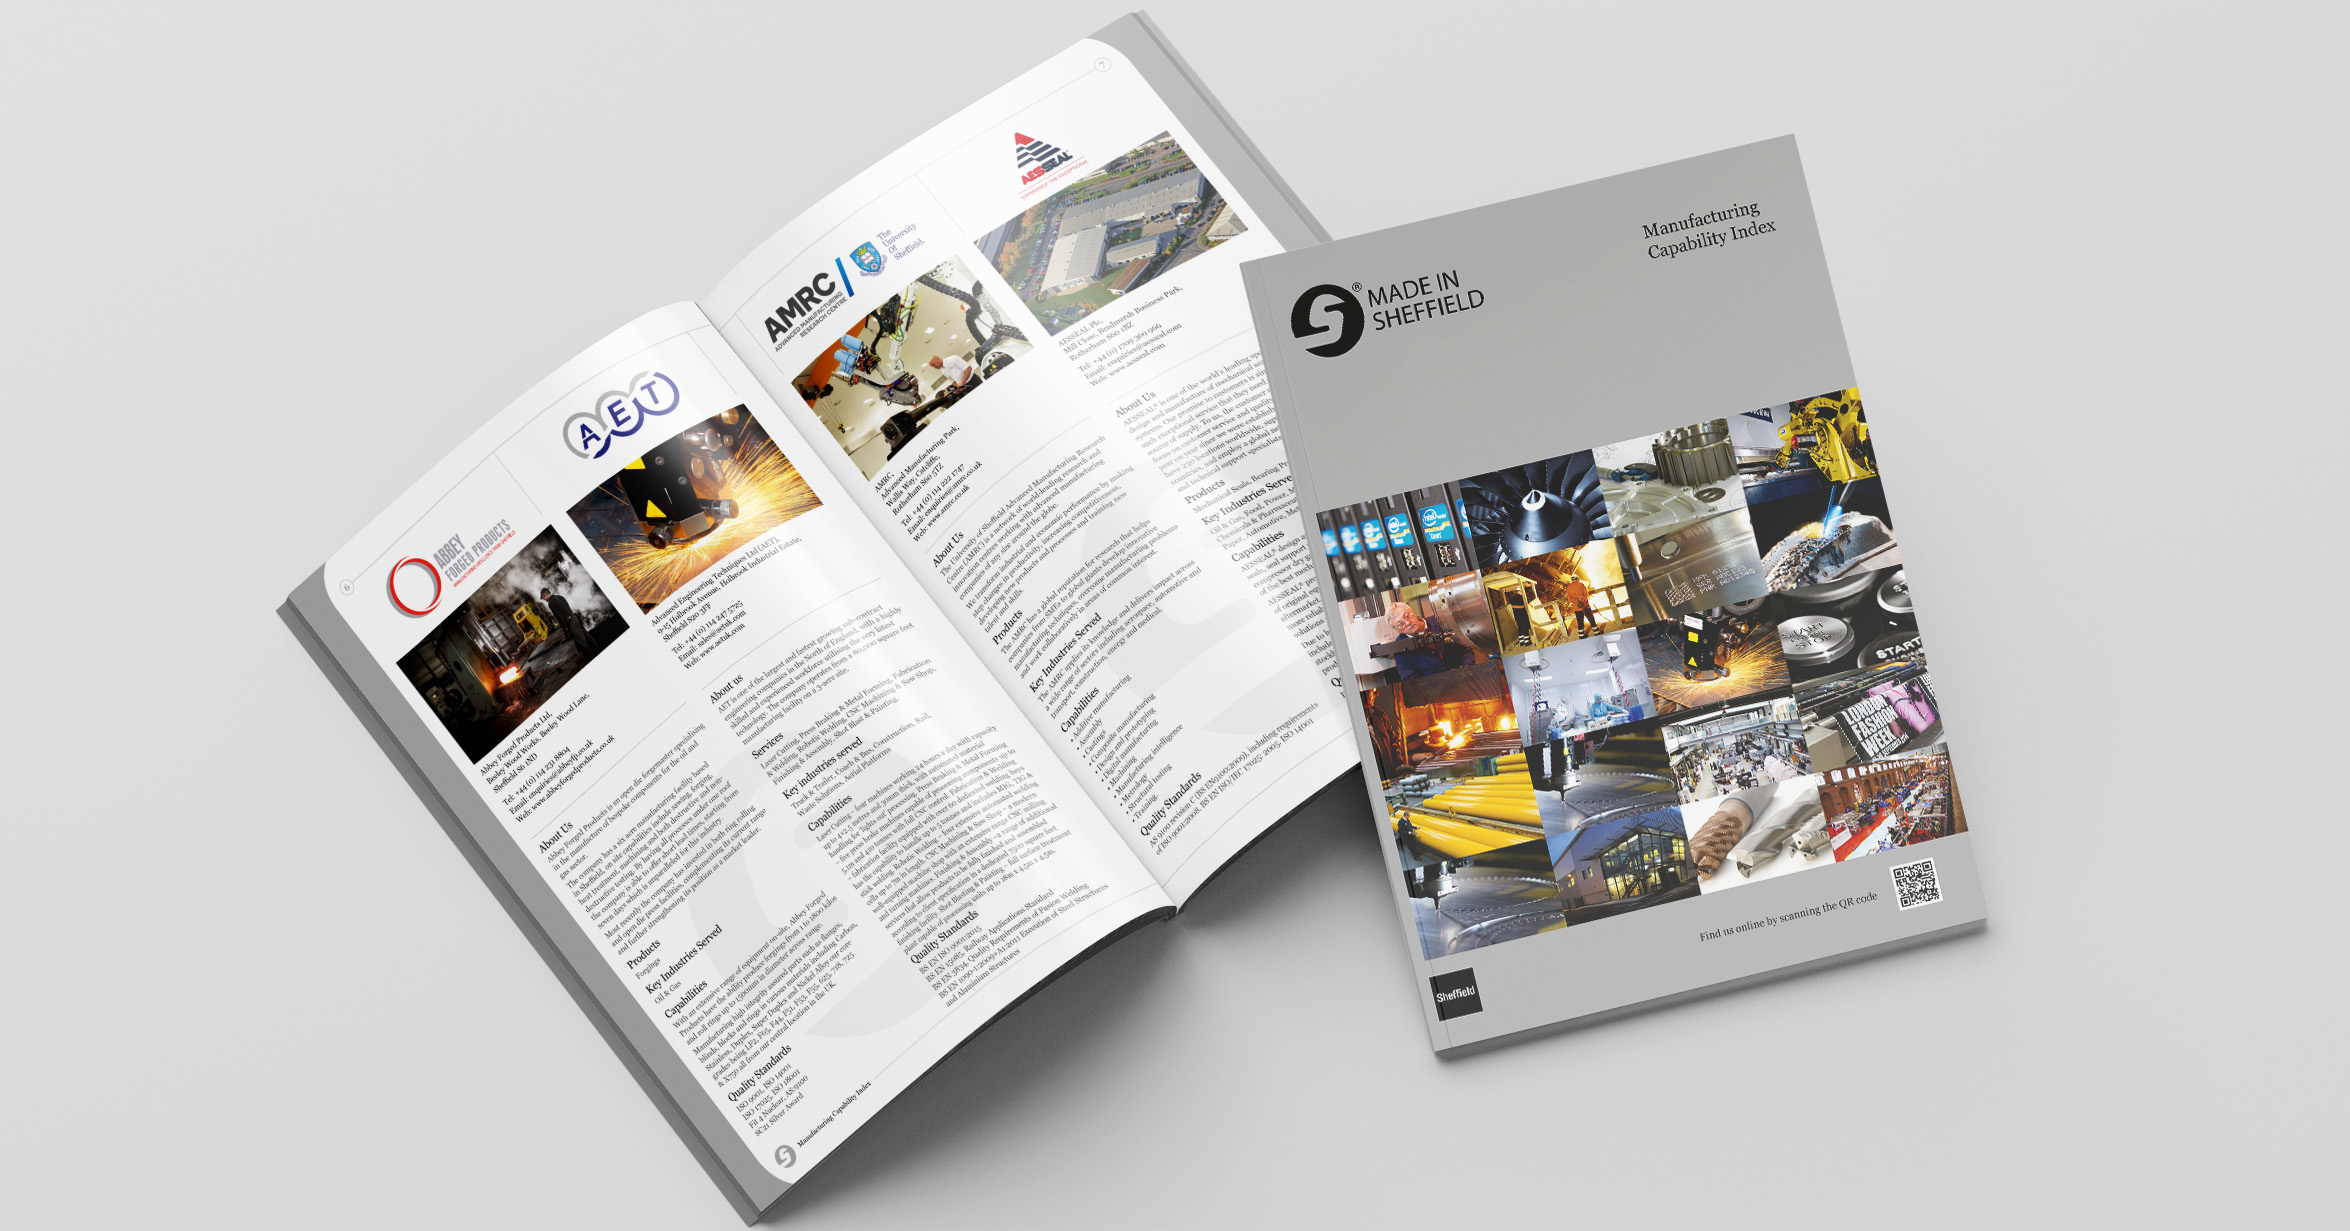 Corporate Literature - Design Agency - Made In Sheffield